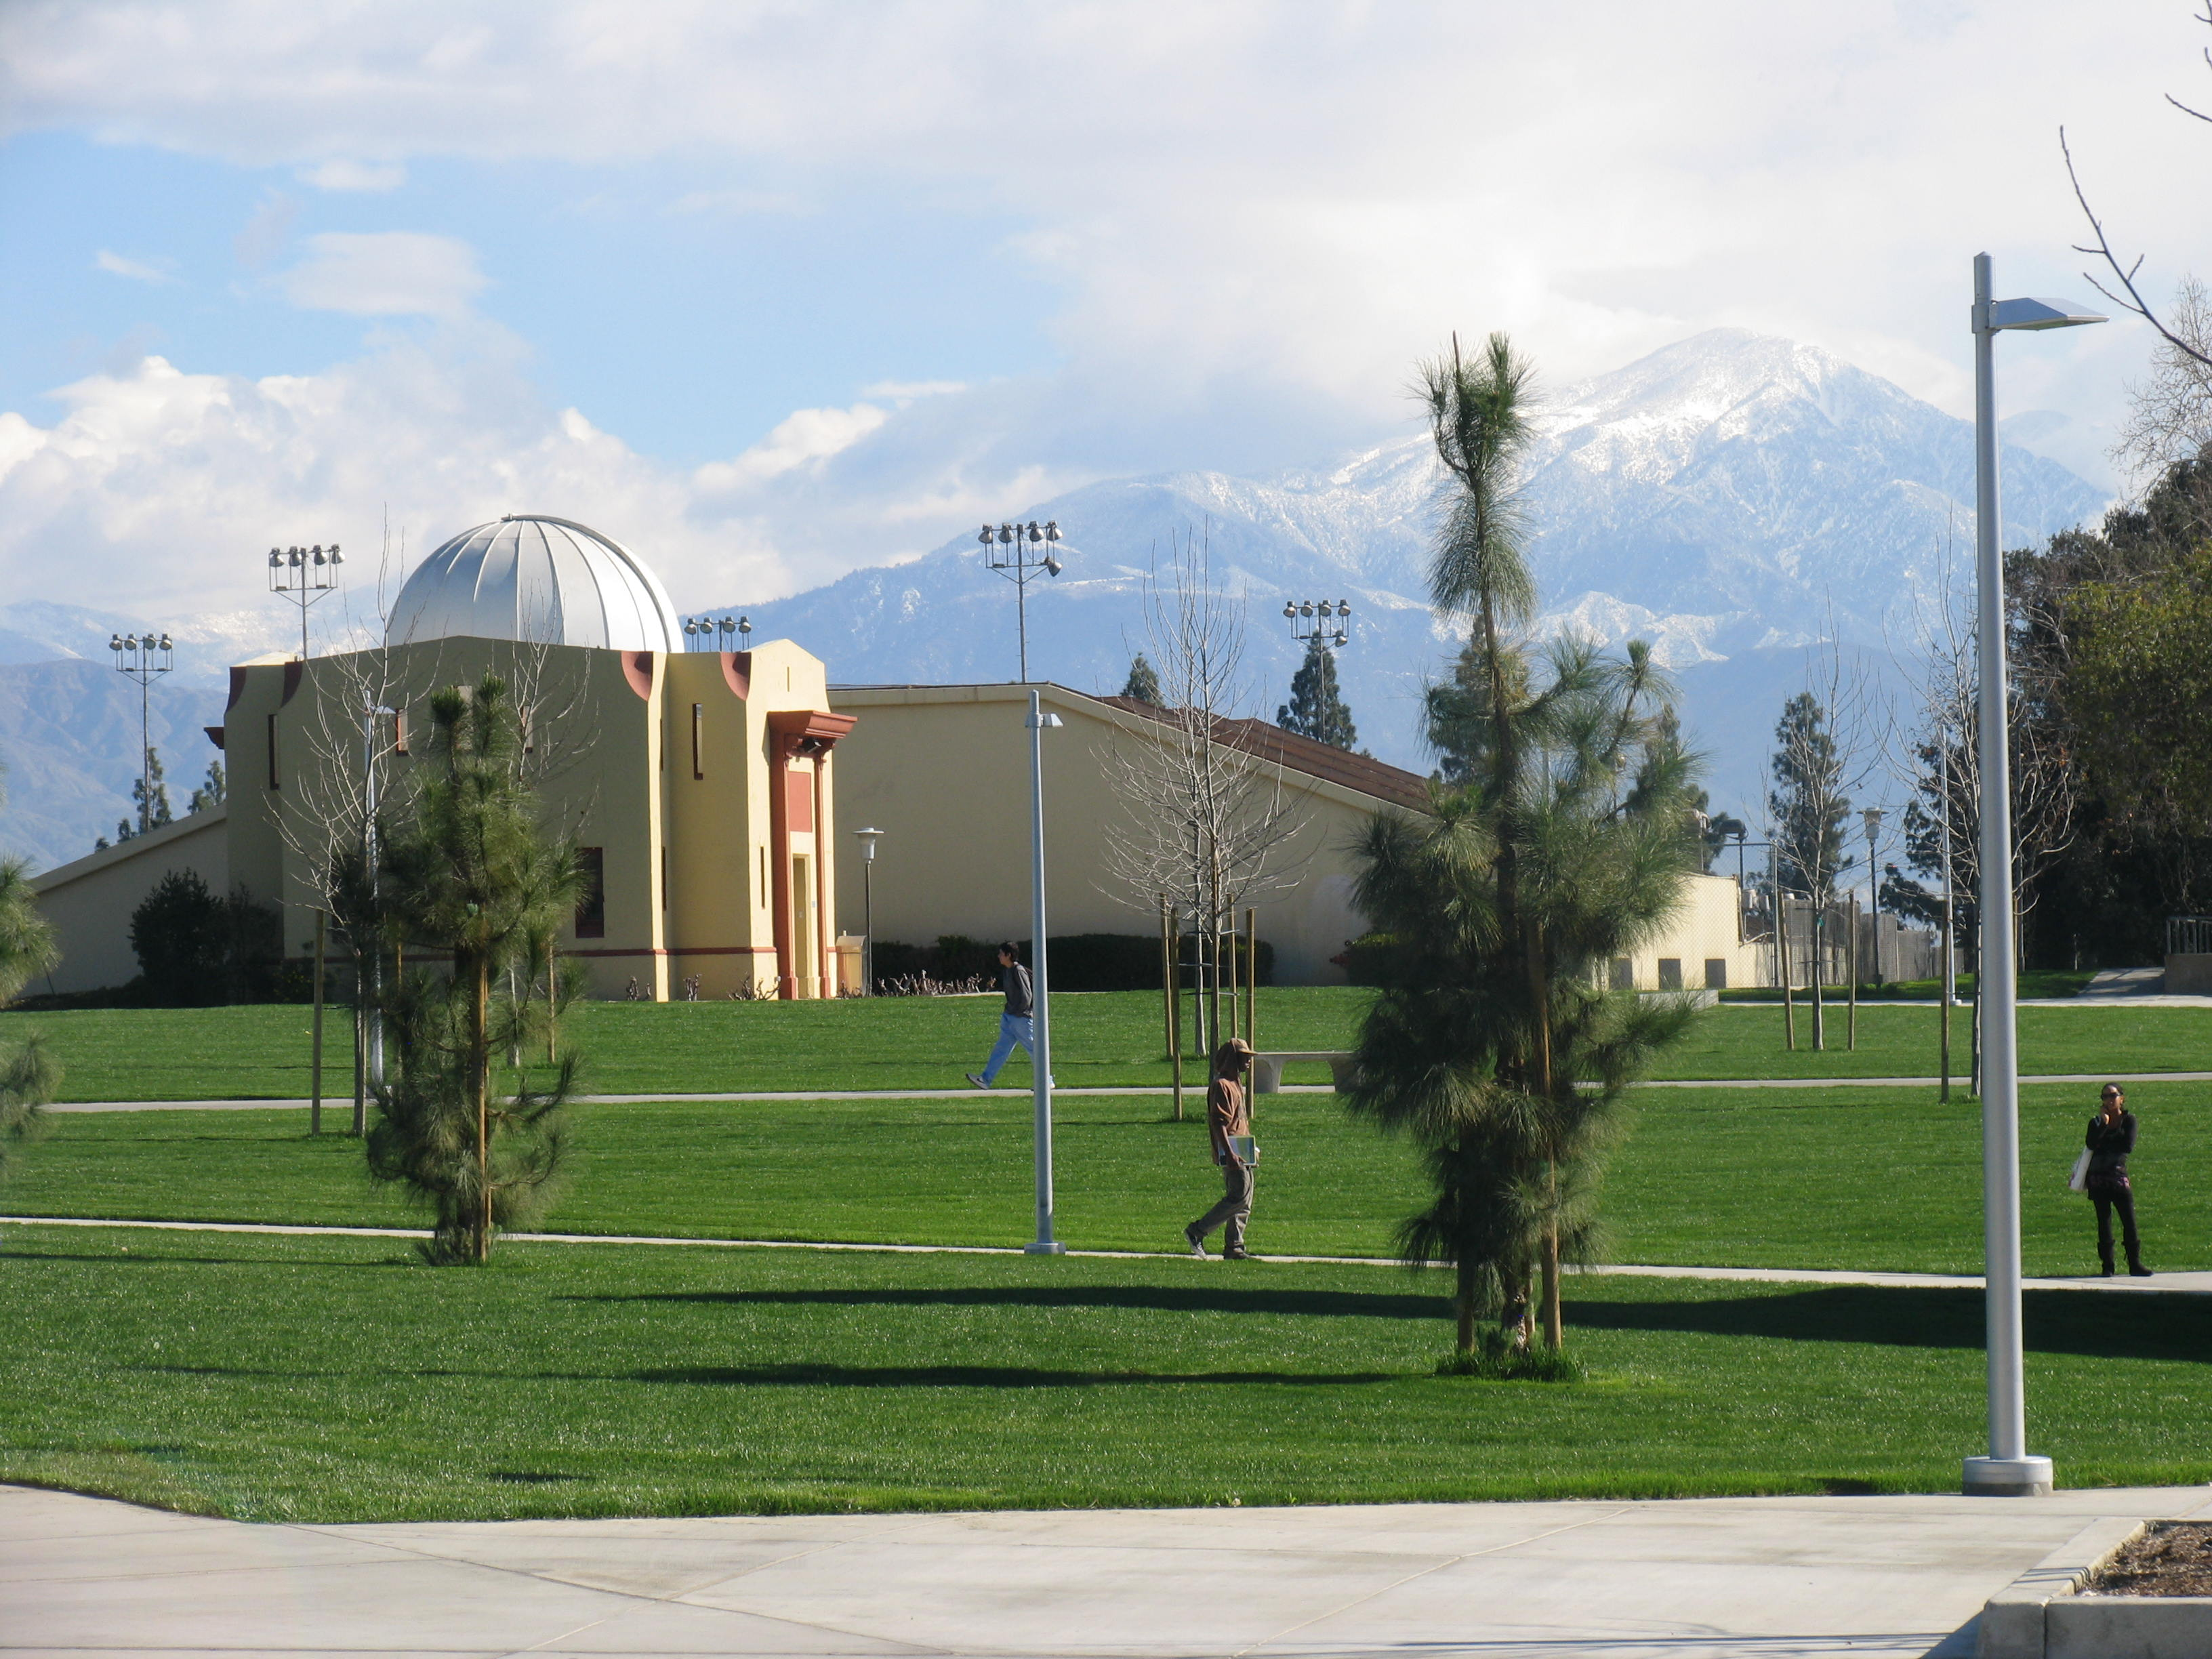 observatory building and snowy mountains